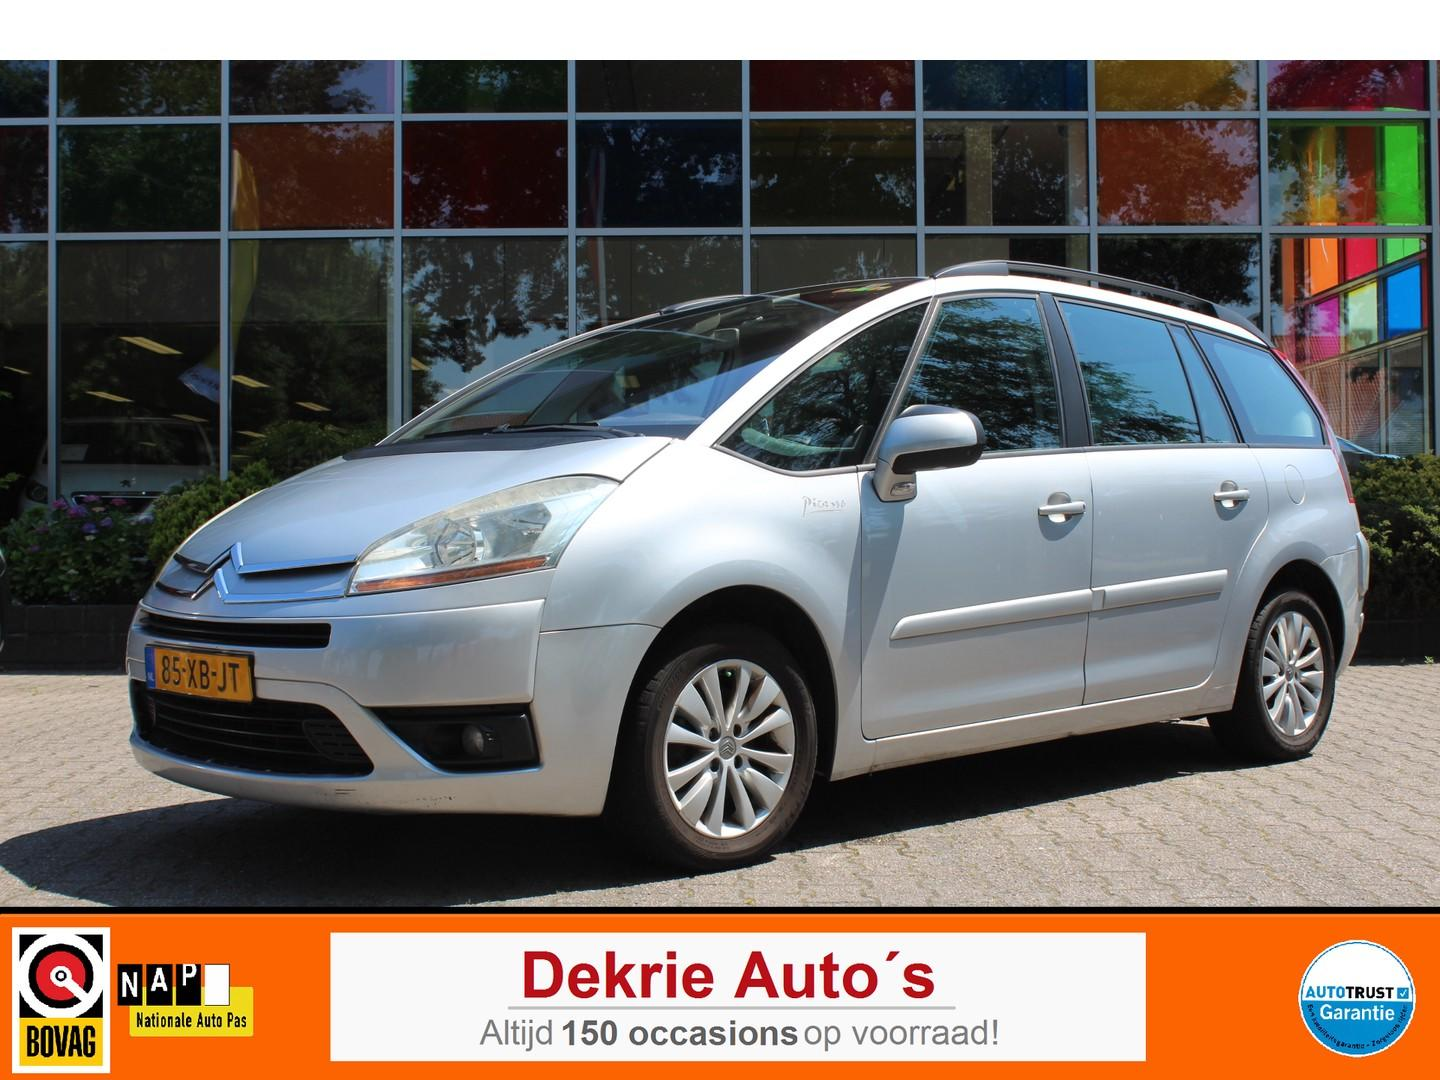 Citroën Grand c4 picasso 2.0-16v ambiance *7-pers.* automaat niet goed